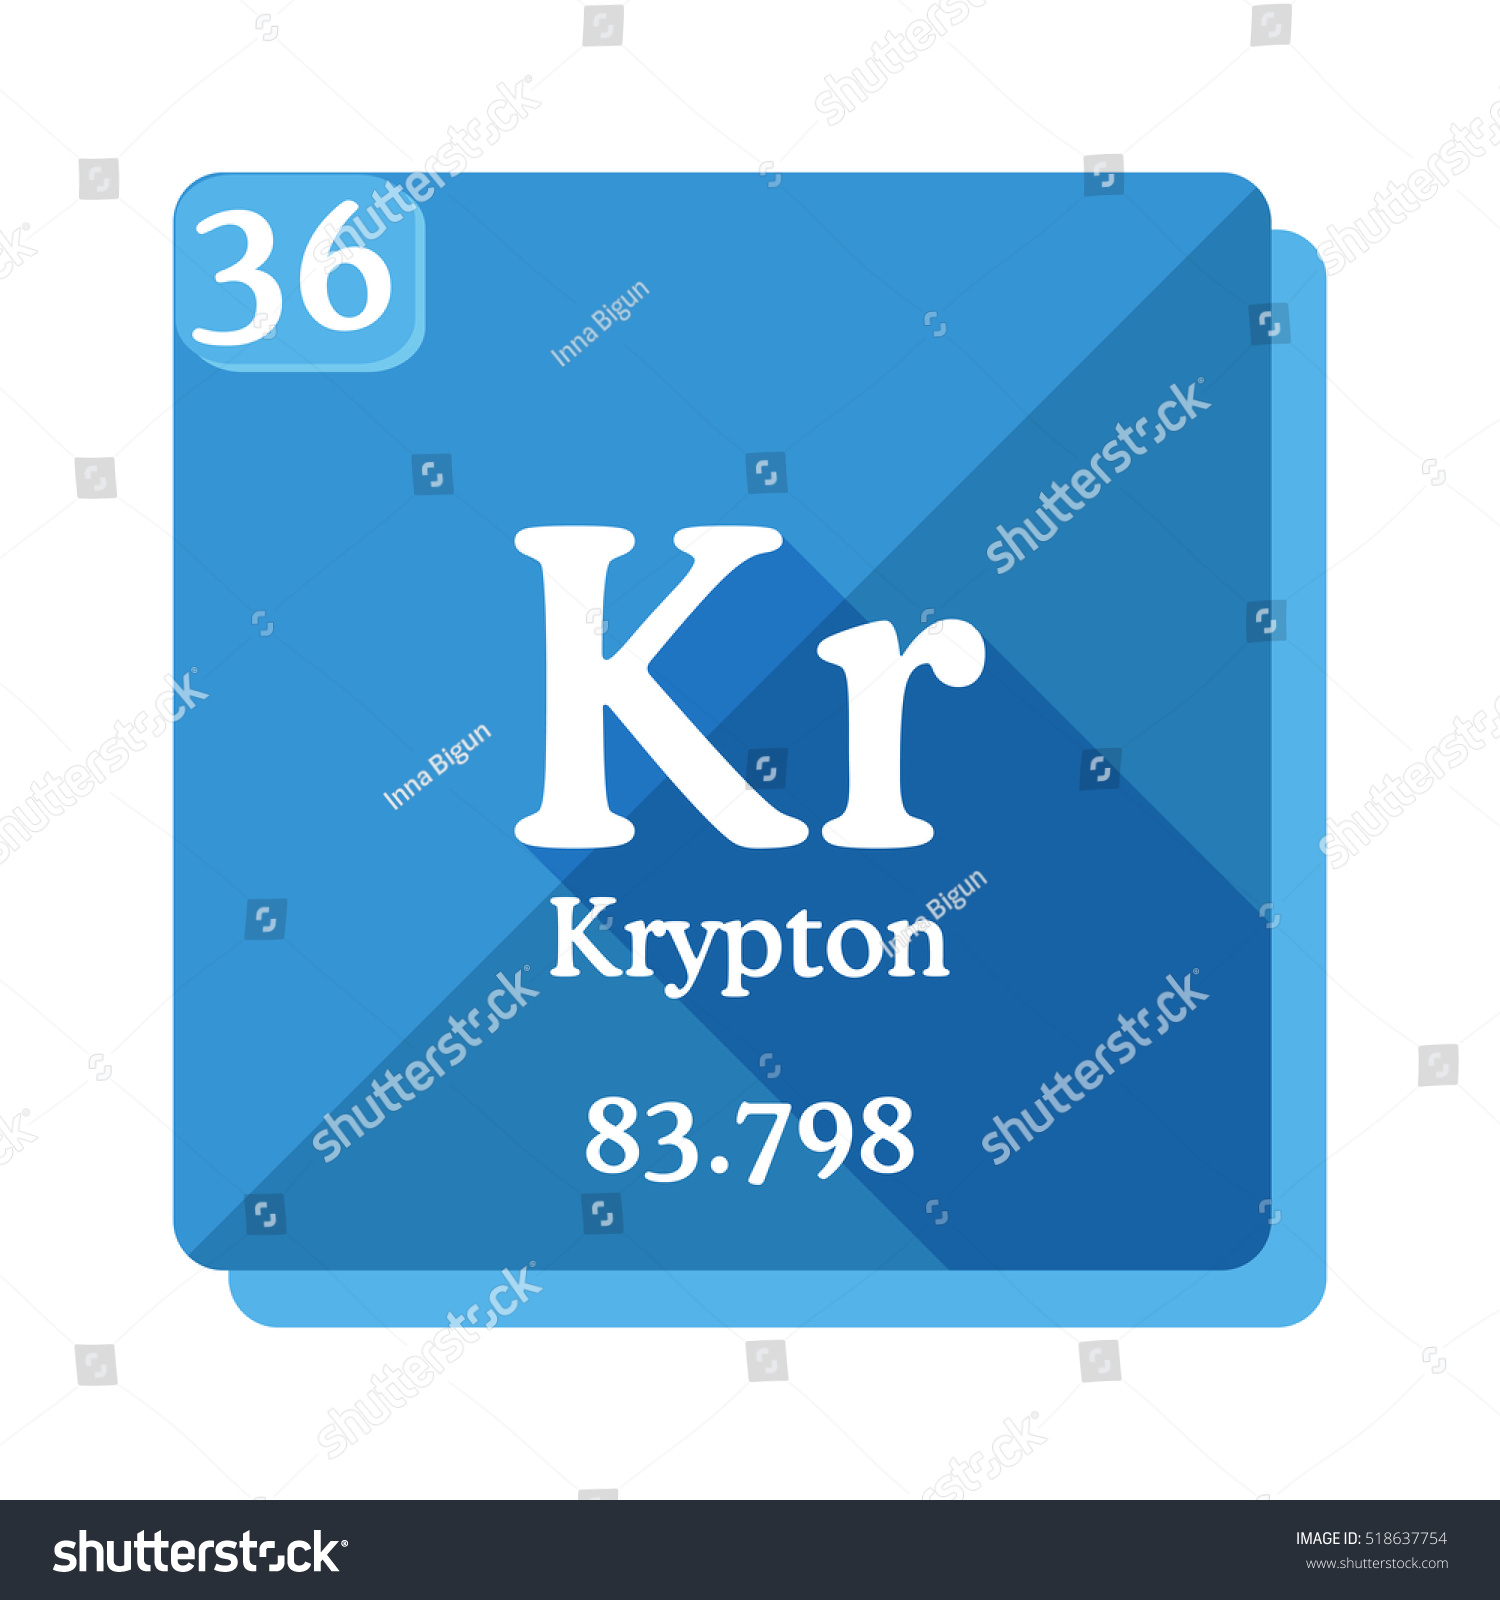 Kr symbol periodic table images periodic table images element krypton periodic table stock chemistry flow charts kr symbol periodic table image collections periodic table gamestrikefo Image collections